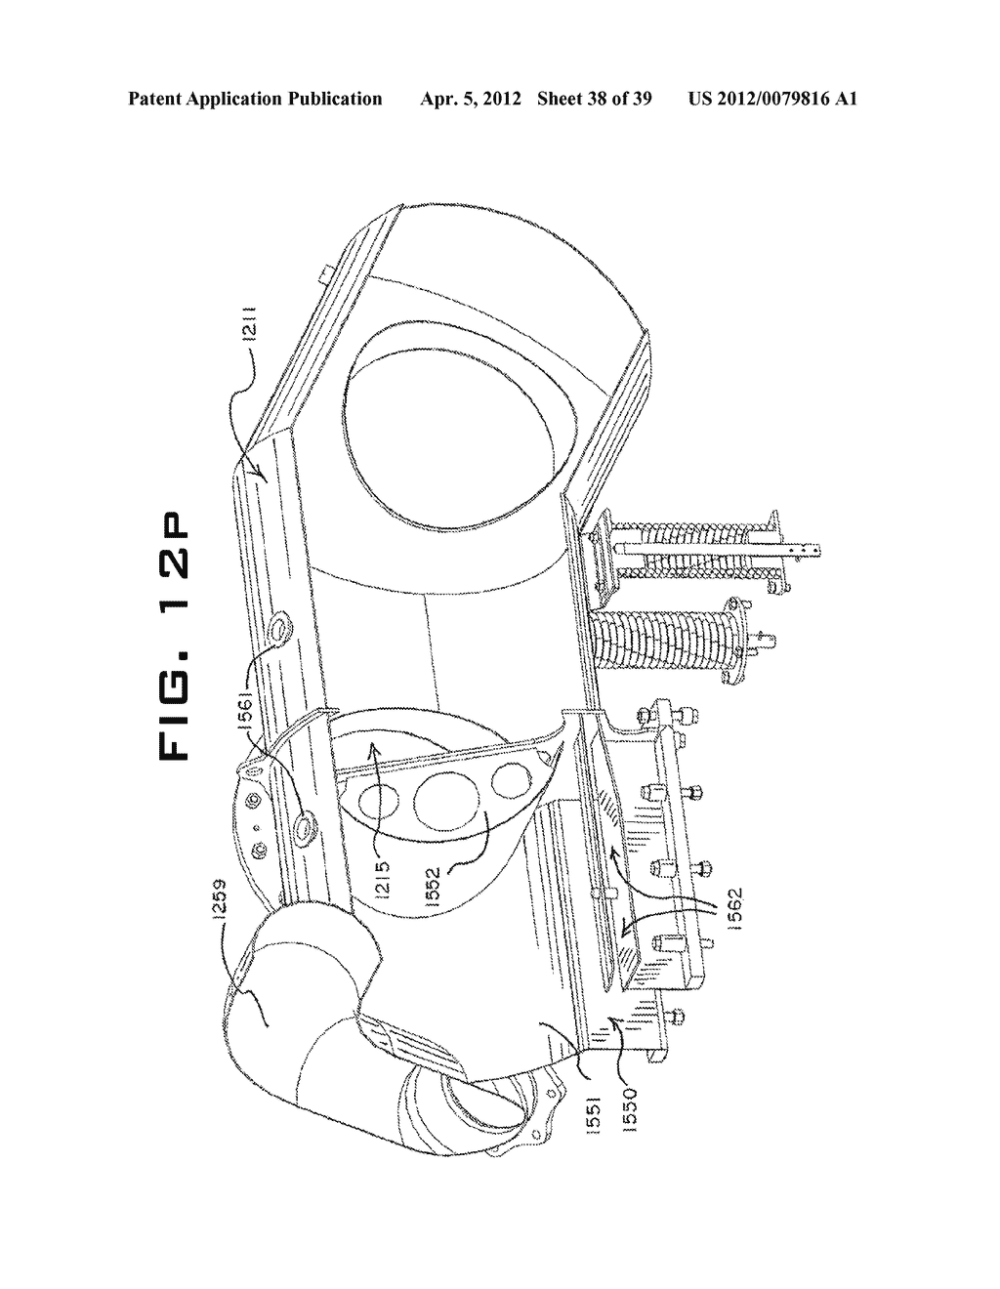 medium resolution of turbocharger mixing manifold for an exhaust aftertreatment system for a locomotive having a two stroke locomotive diesel engine diagram schematic